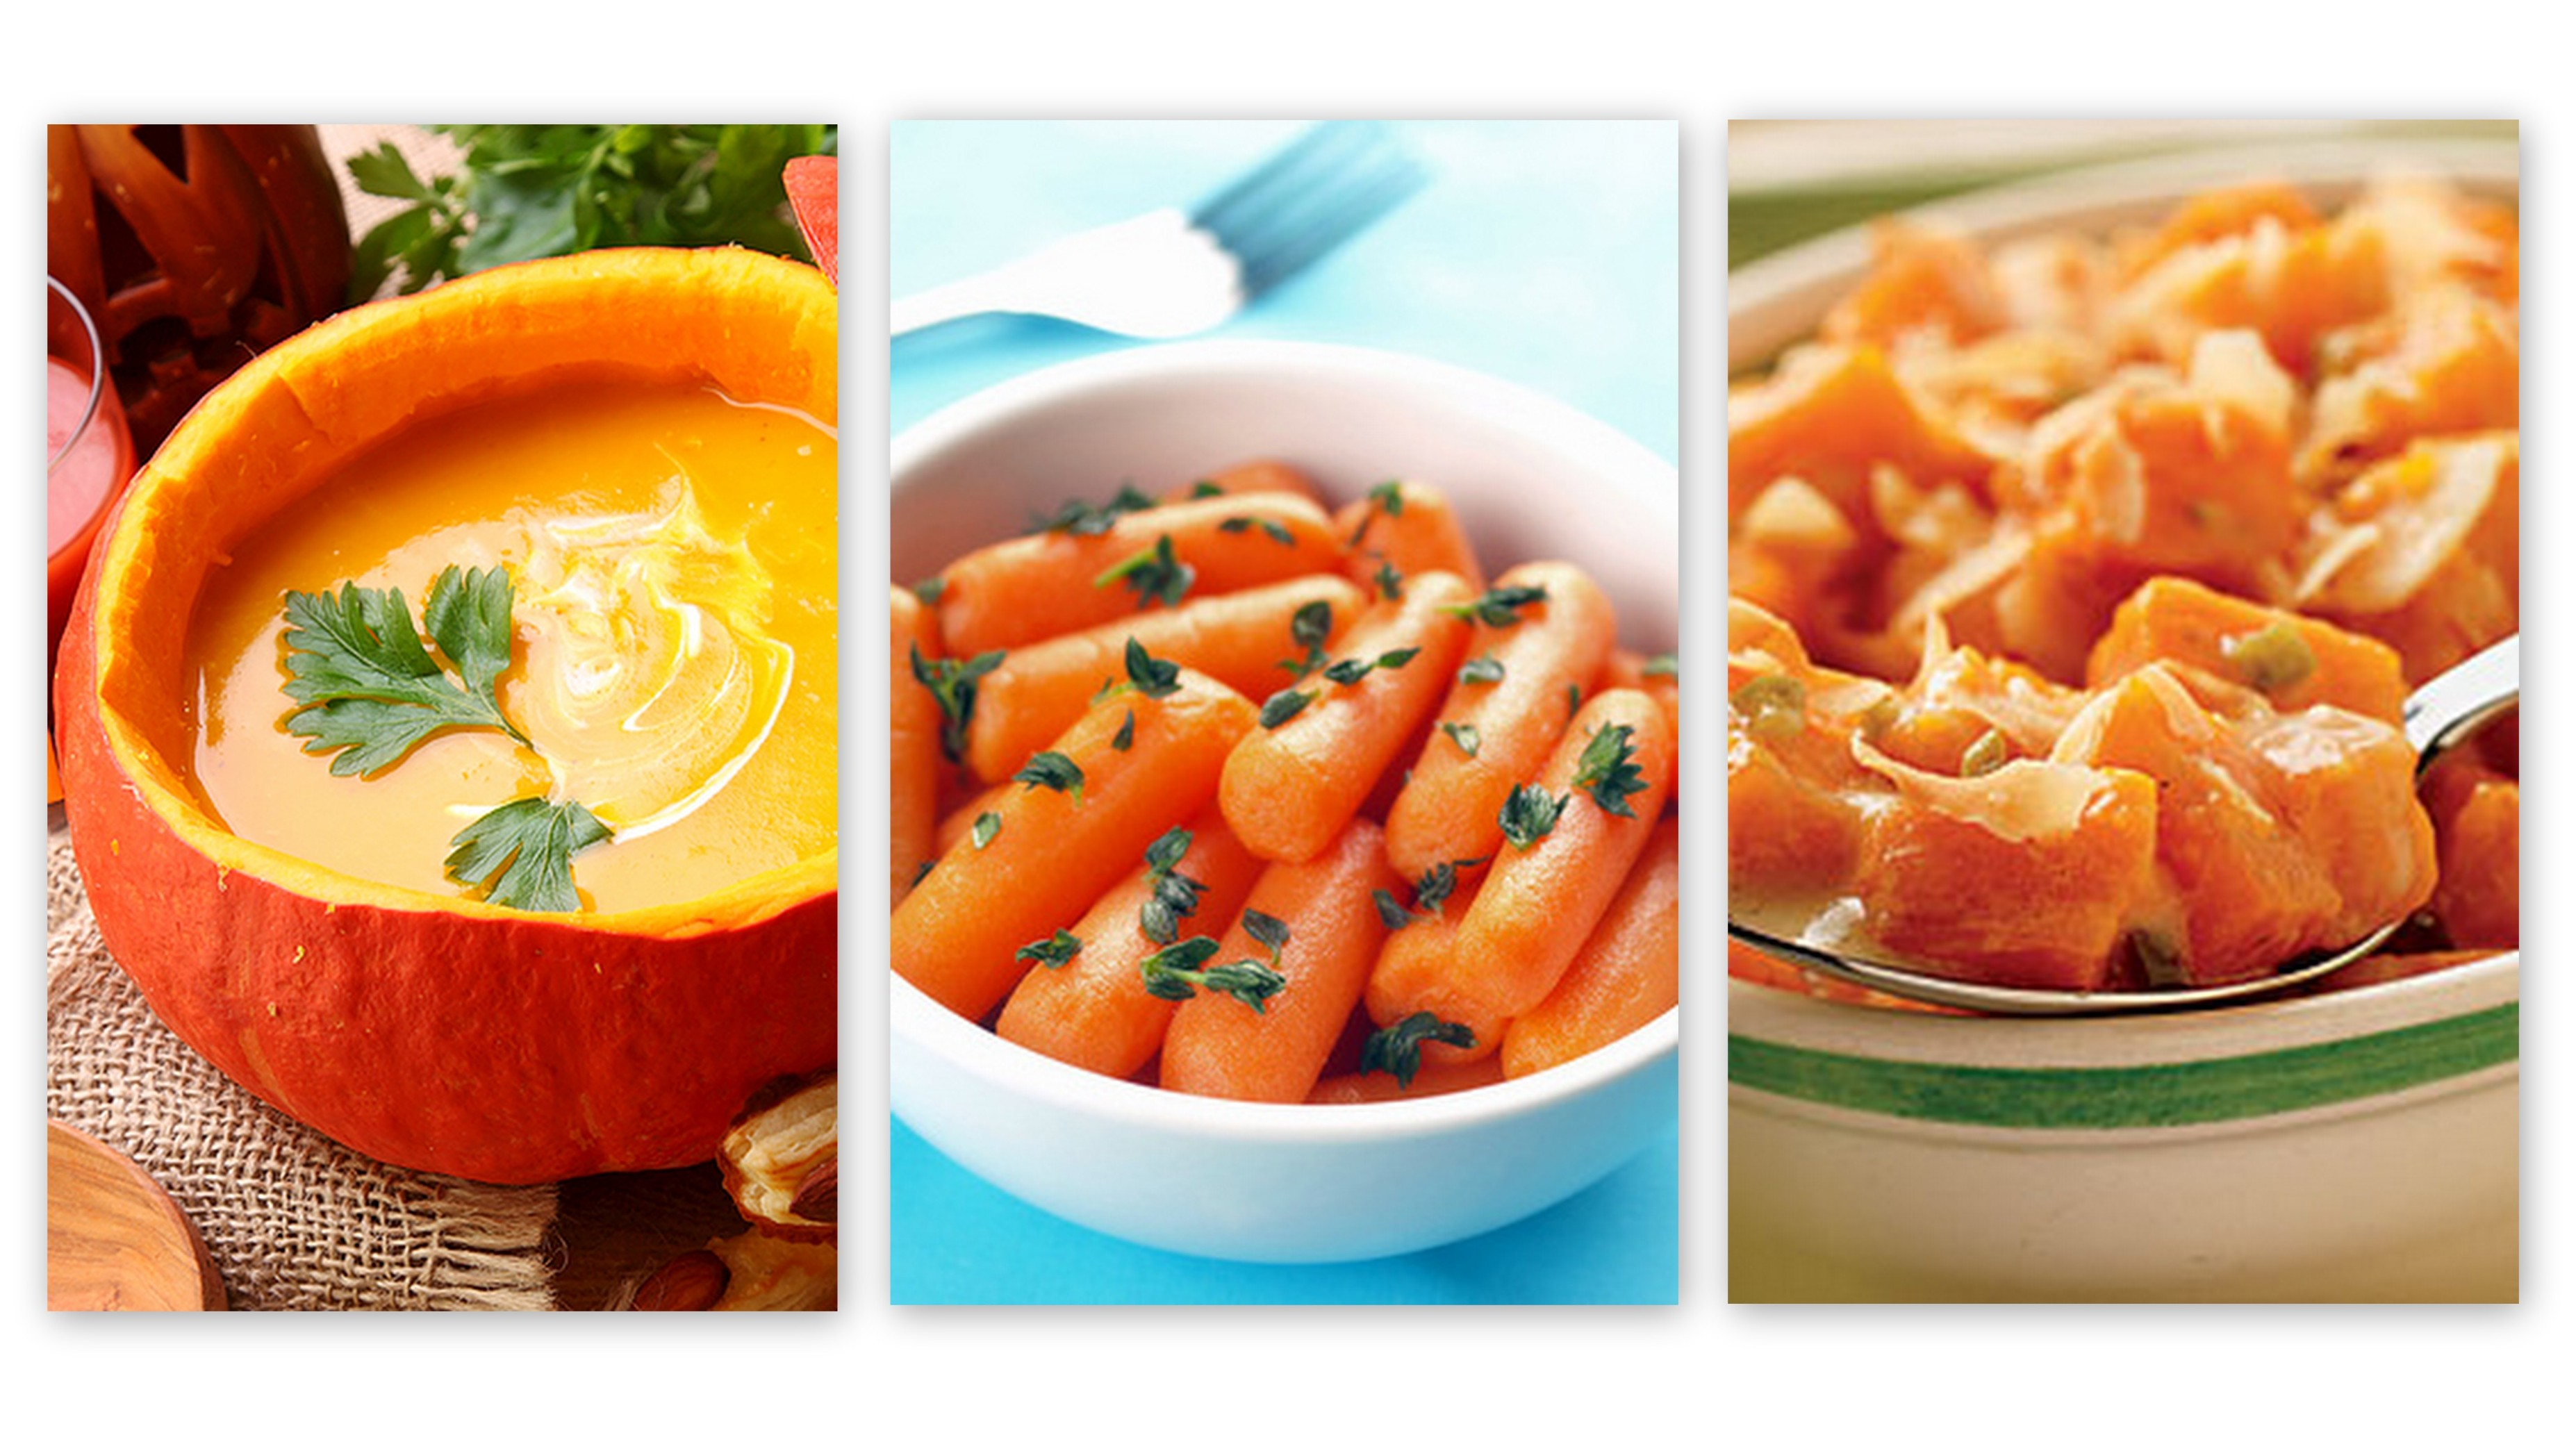 ... and healthy orange products that belongs to healthy autumn foods